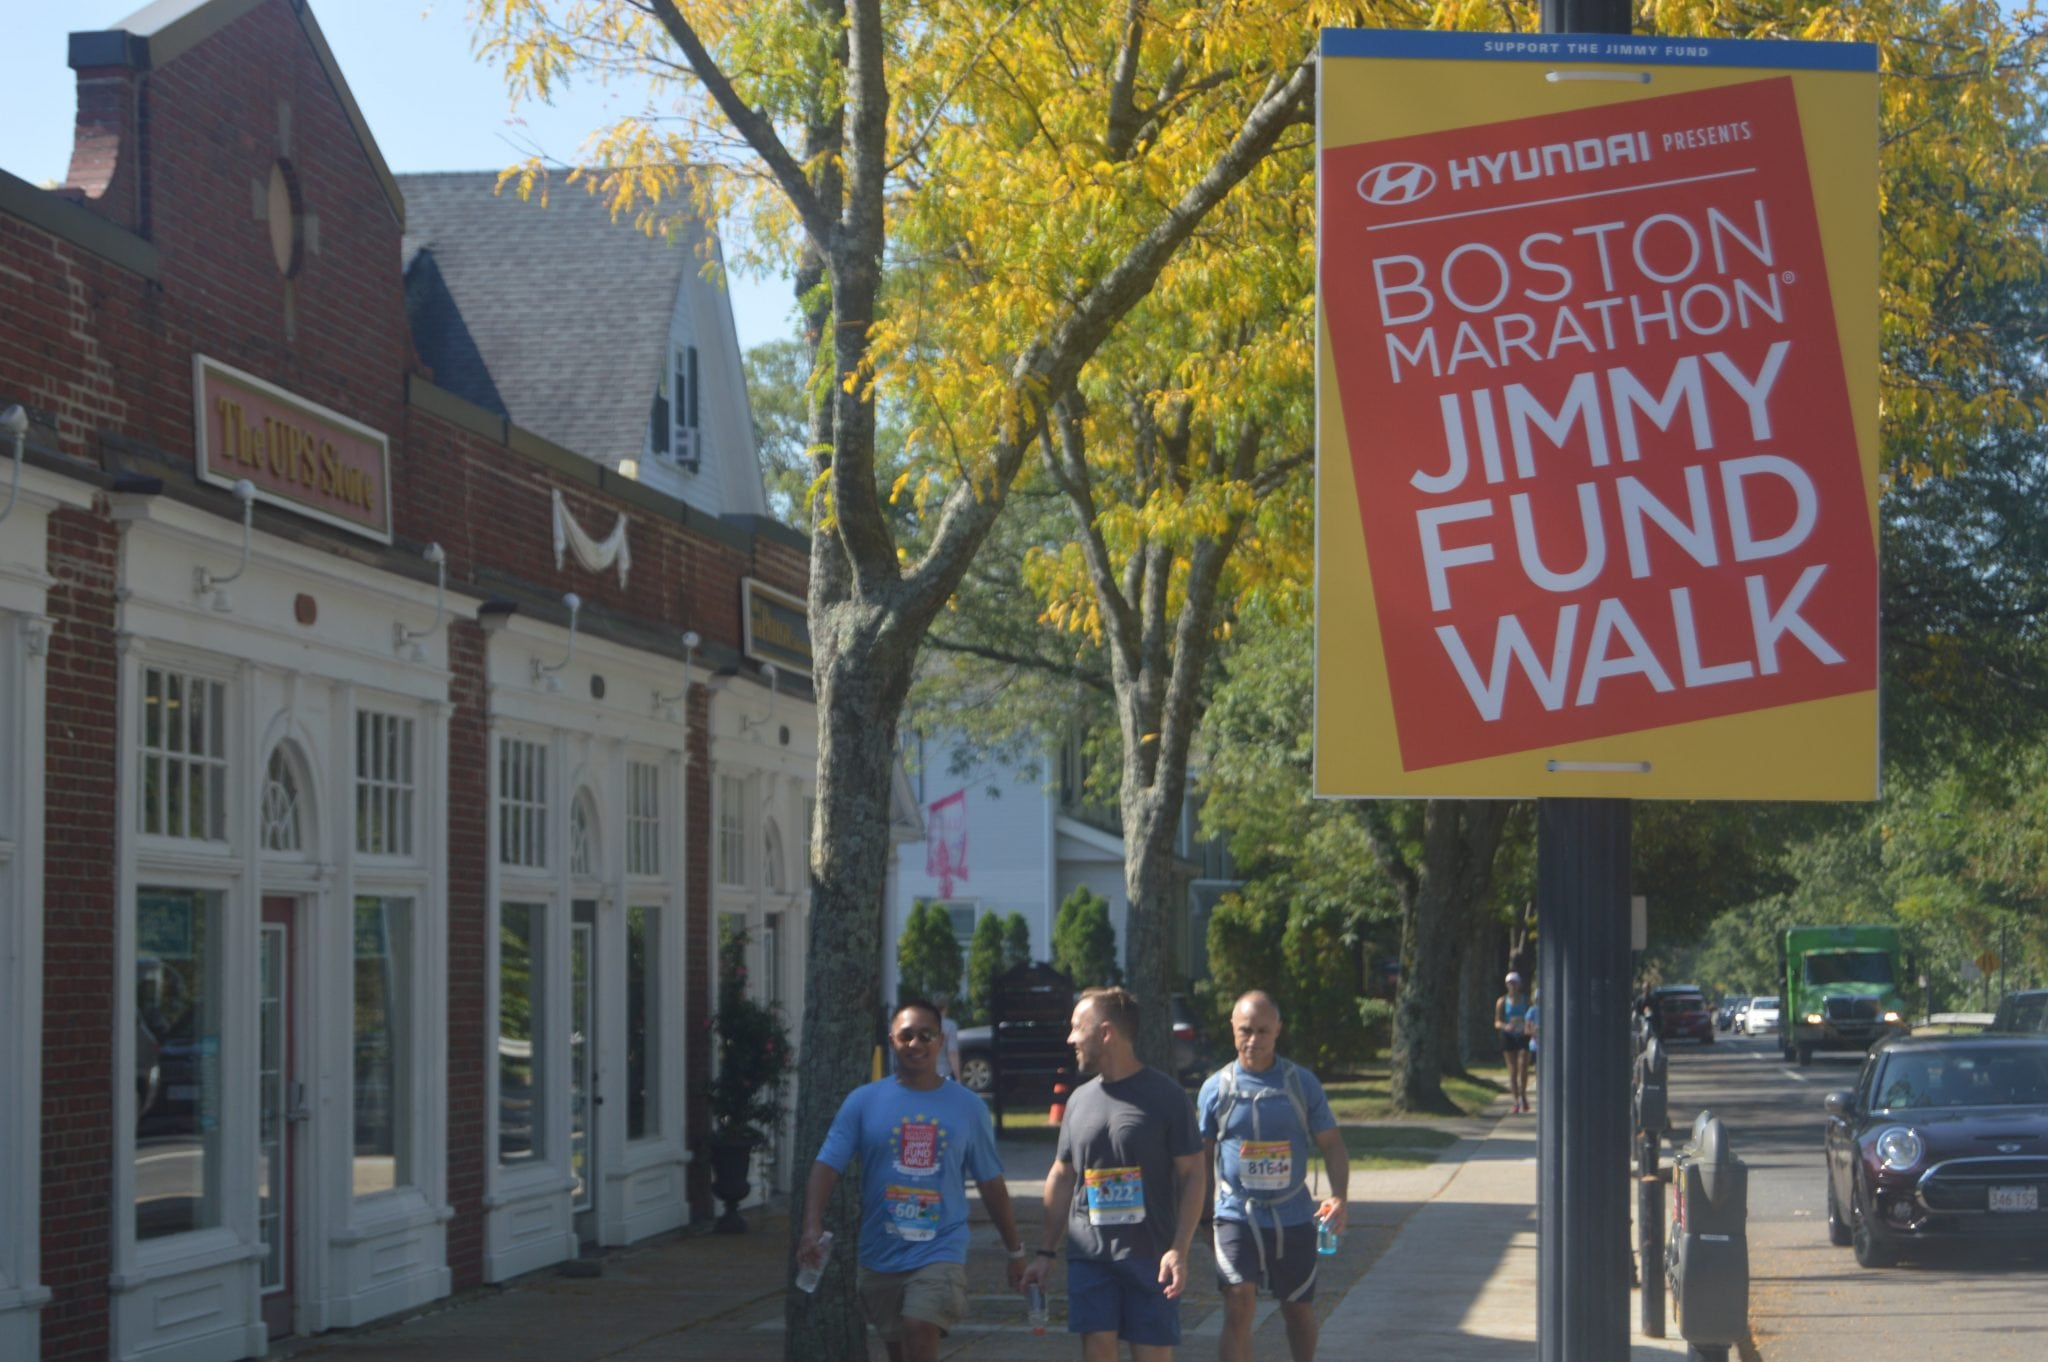 Wellesley Jimmy Fund Walk